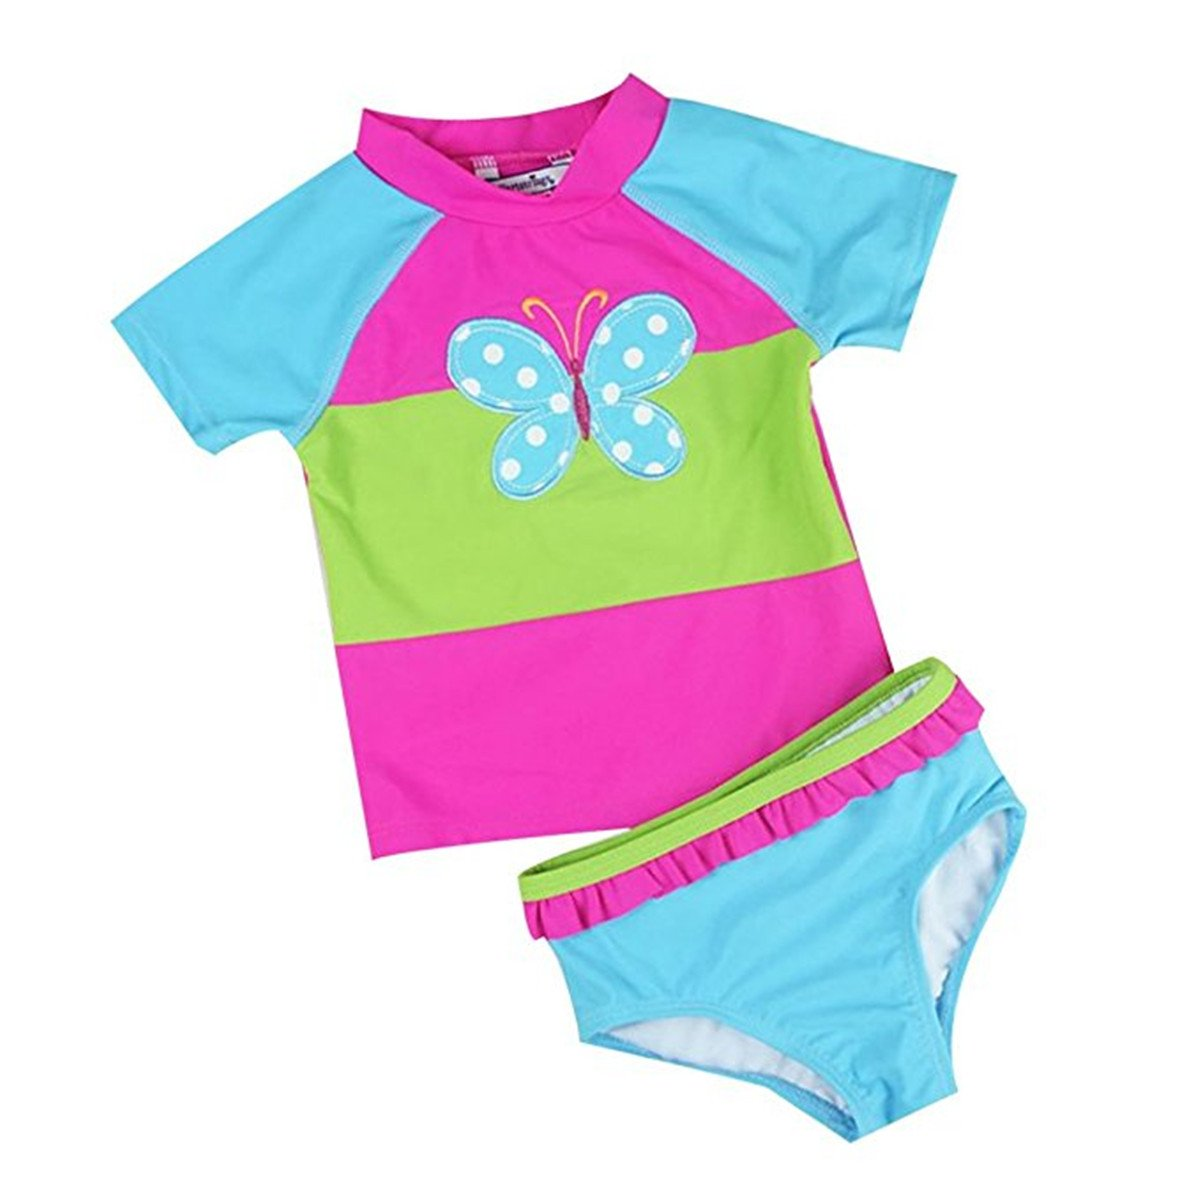 Baby Kids Girls Toddler Two Pieces Butterfly Ruffled Sun Protection Rash Guard UPF 50+ UV Swimsuit swavjnsuit001